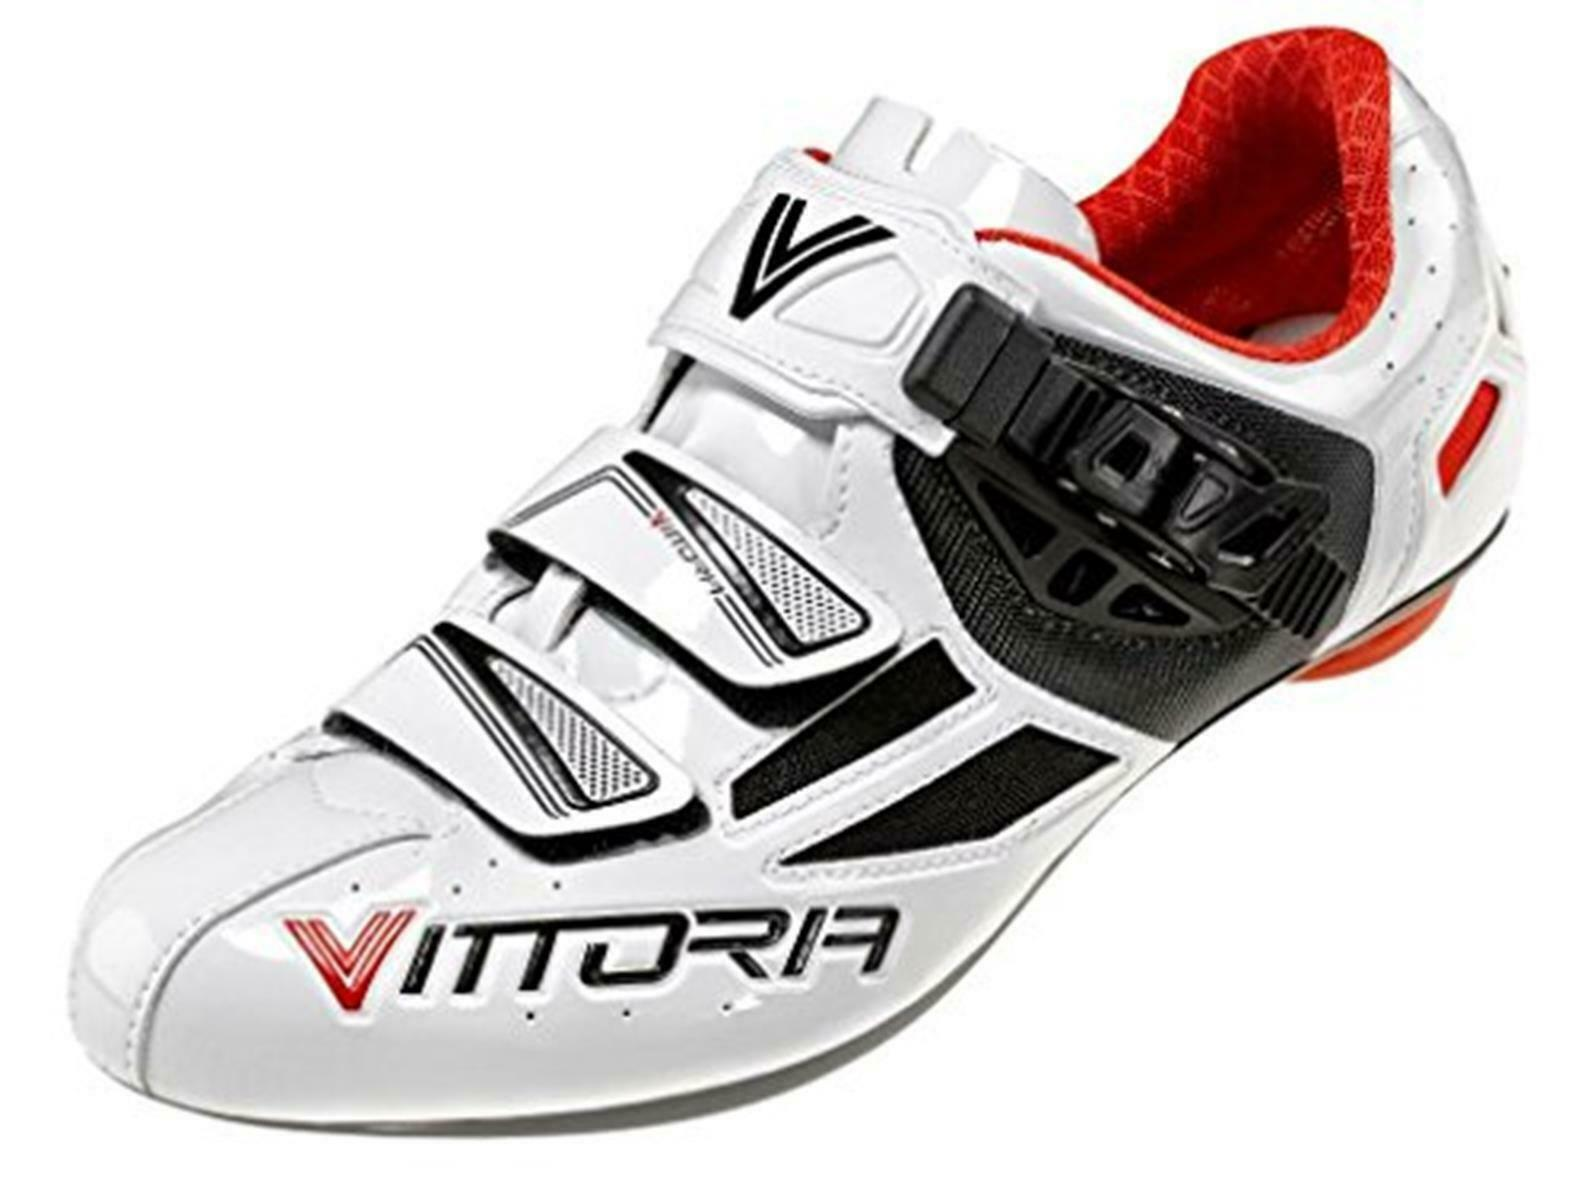 Vittoria Speed High-Quality Road Bike Cycling shoes White US 5 NEW